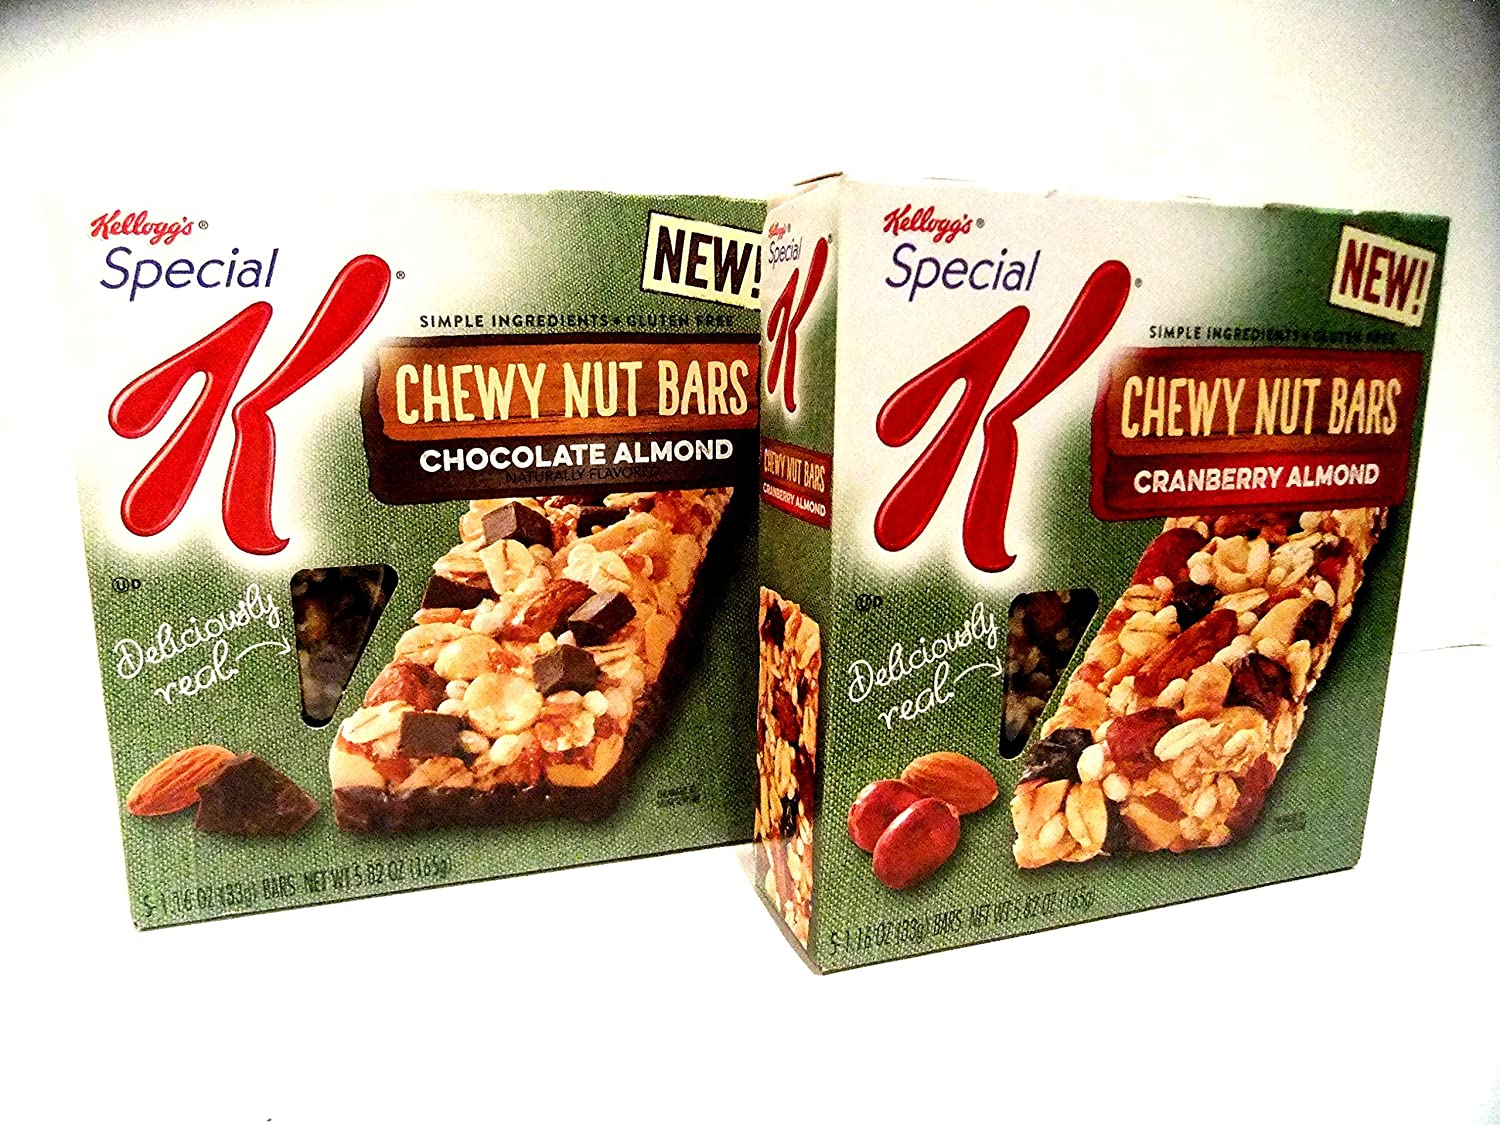 Kellogg's, Special K, NEW FLAVORS VARIETY PACK! CHEWY NUT BARS + FREE 19 oz Beverage Bottle, 2 Boxes of CHOCOLATE ALMOND, 2 Boxes of CRANBERRY ALMOND (4 PACK). 5 Bars Per Box.